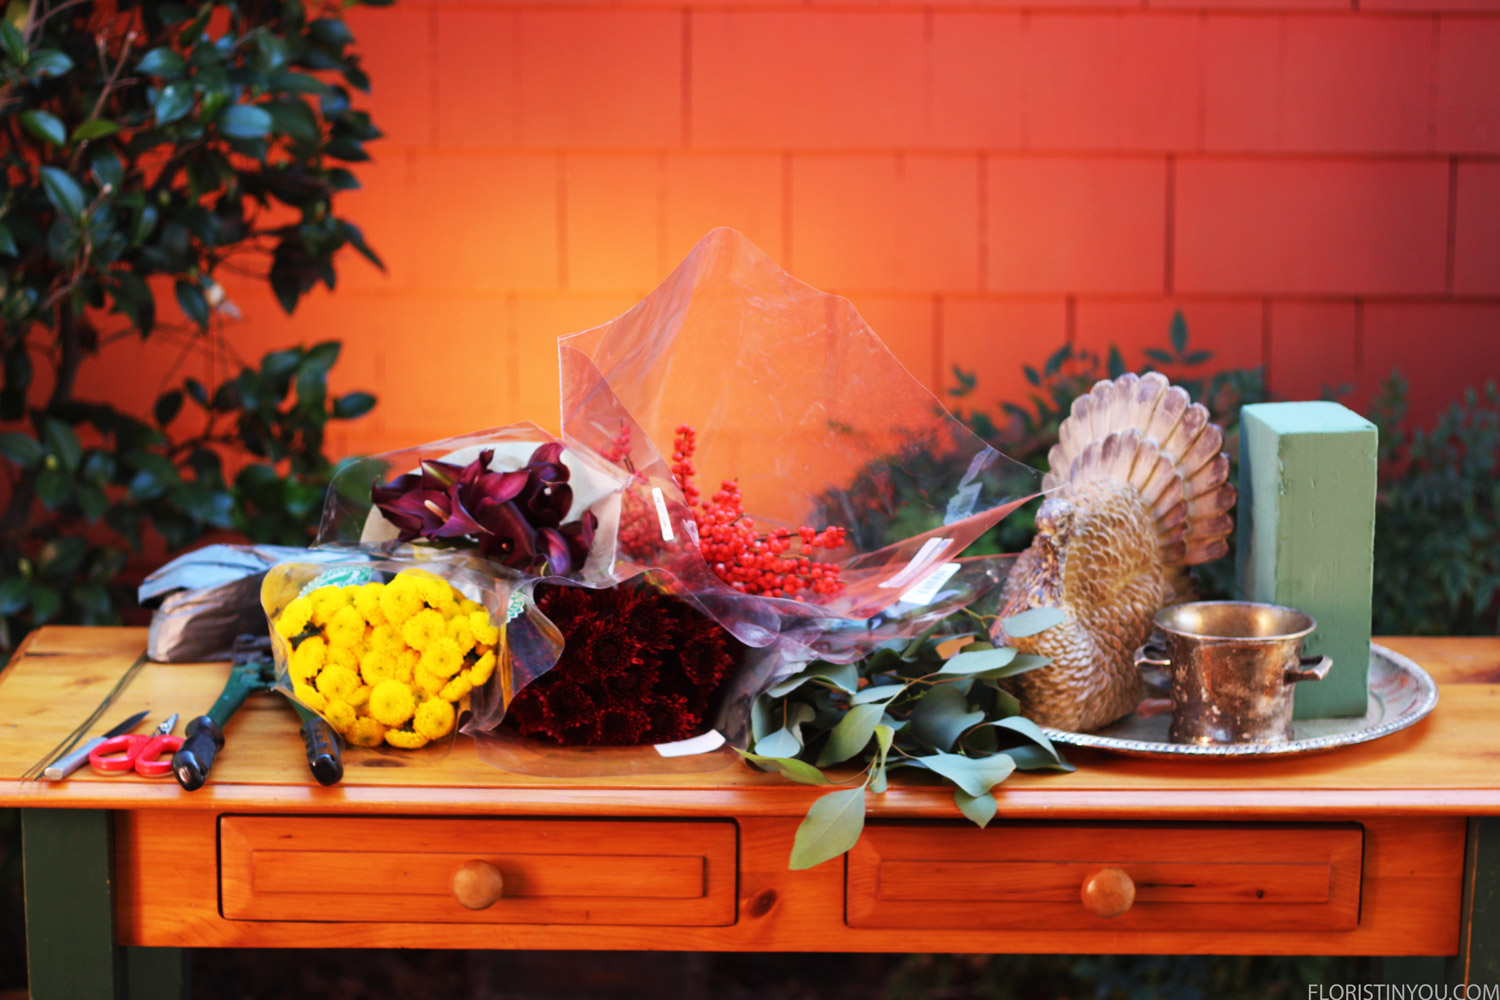 Here are your mums, Calla Lilies, Ilex Berries, and Eucalyptus Leaves, wooden turkey, silver cup, foam, and tools.